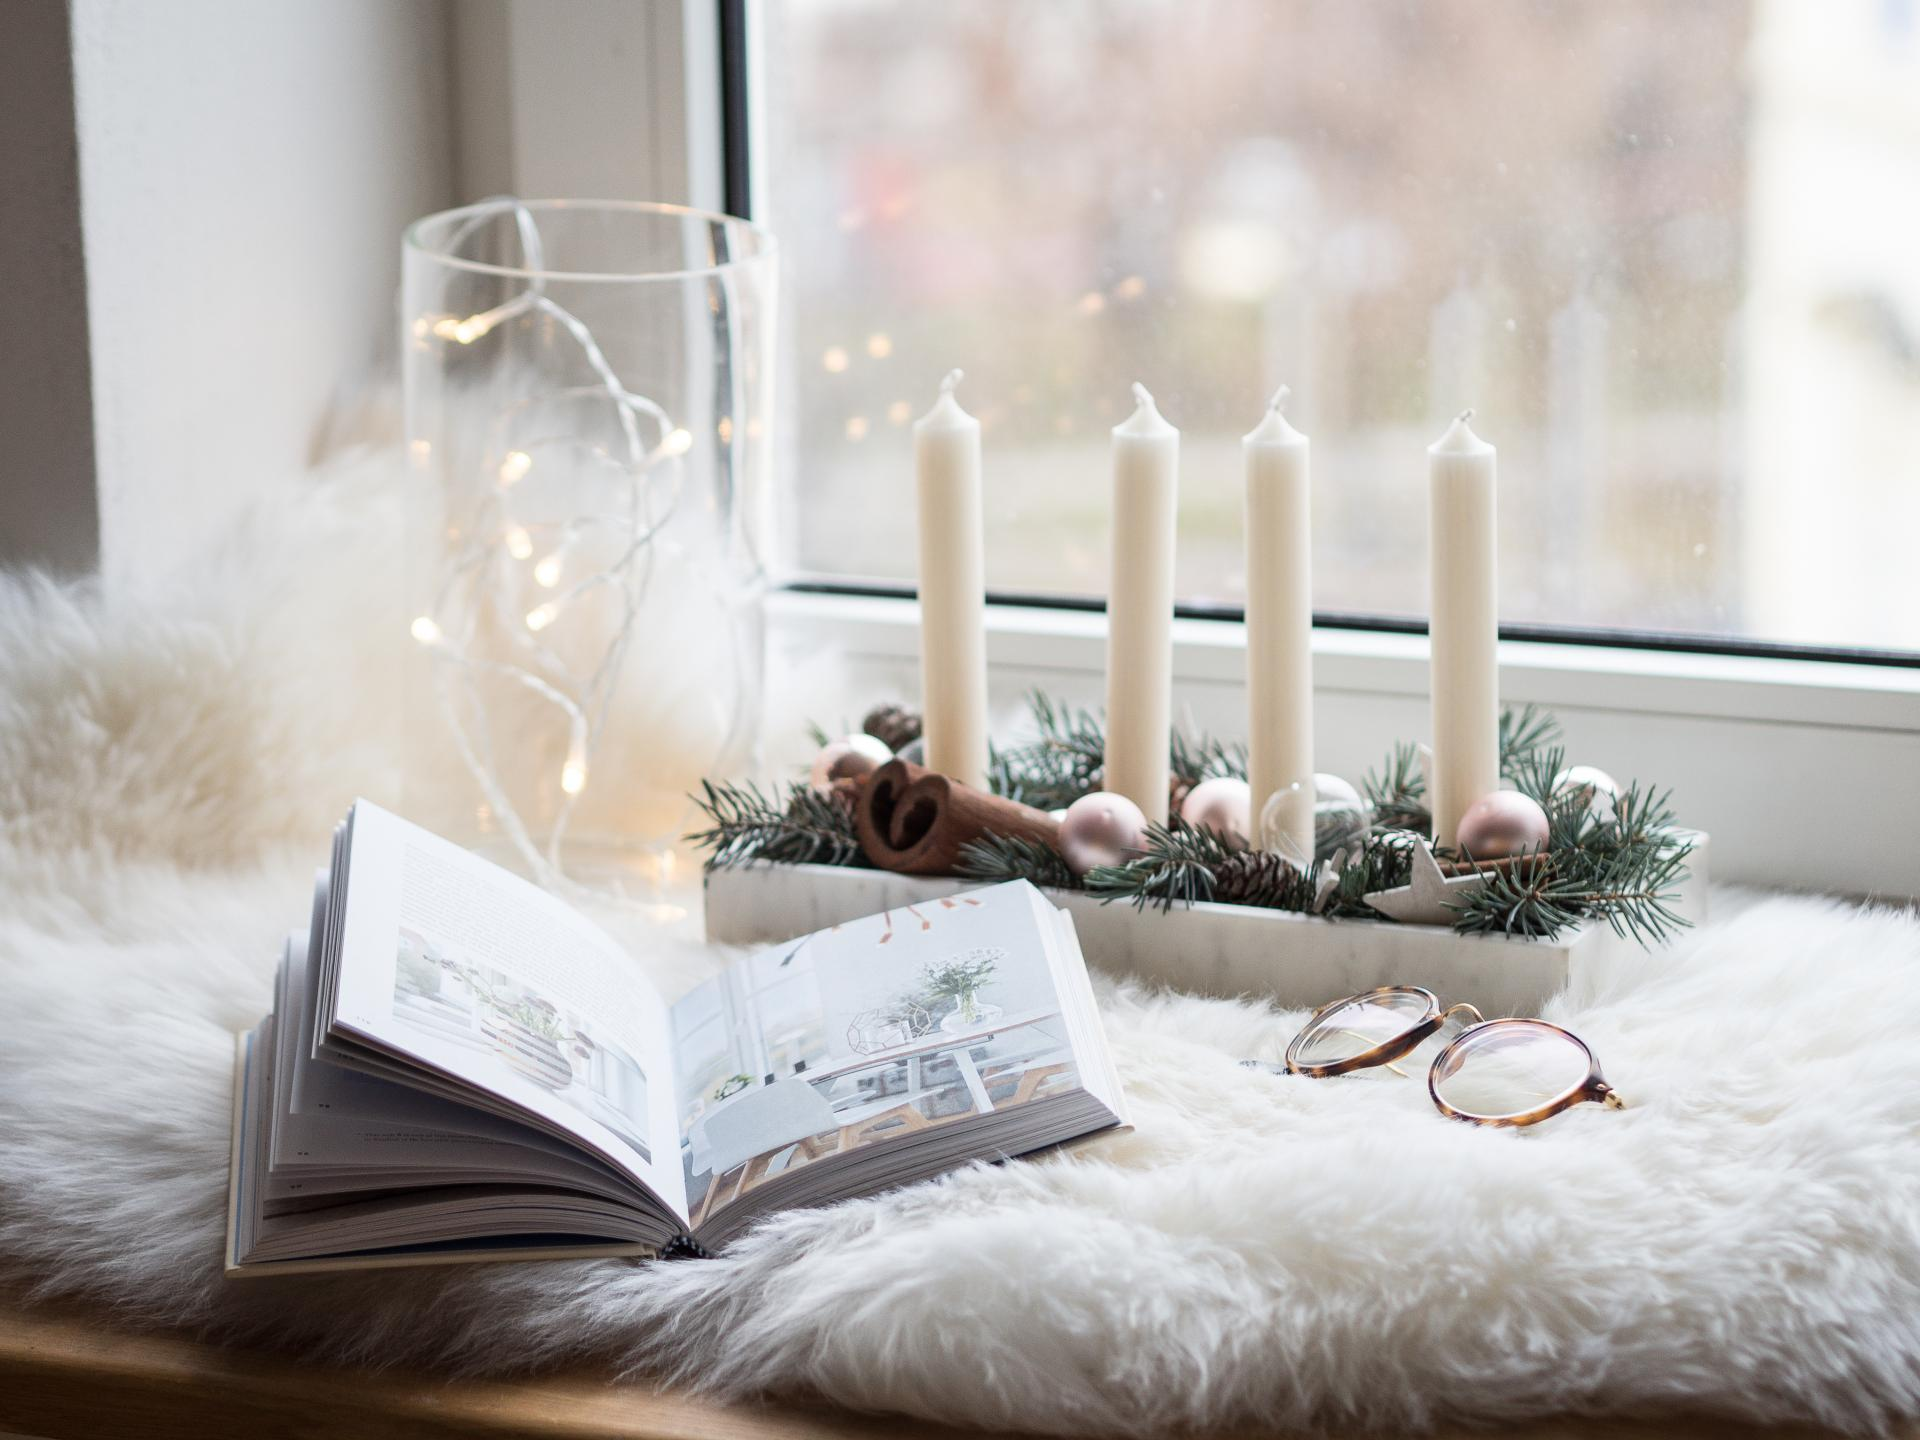 5 EASY WAYS TO MAKE YOUR HOME COZY